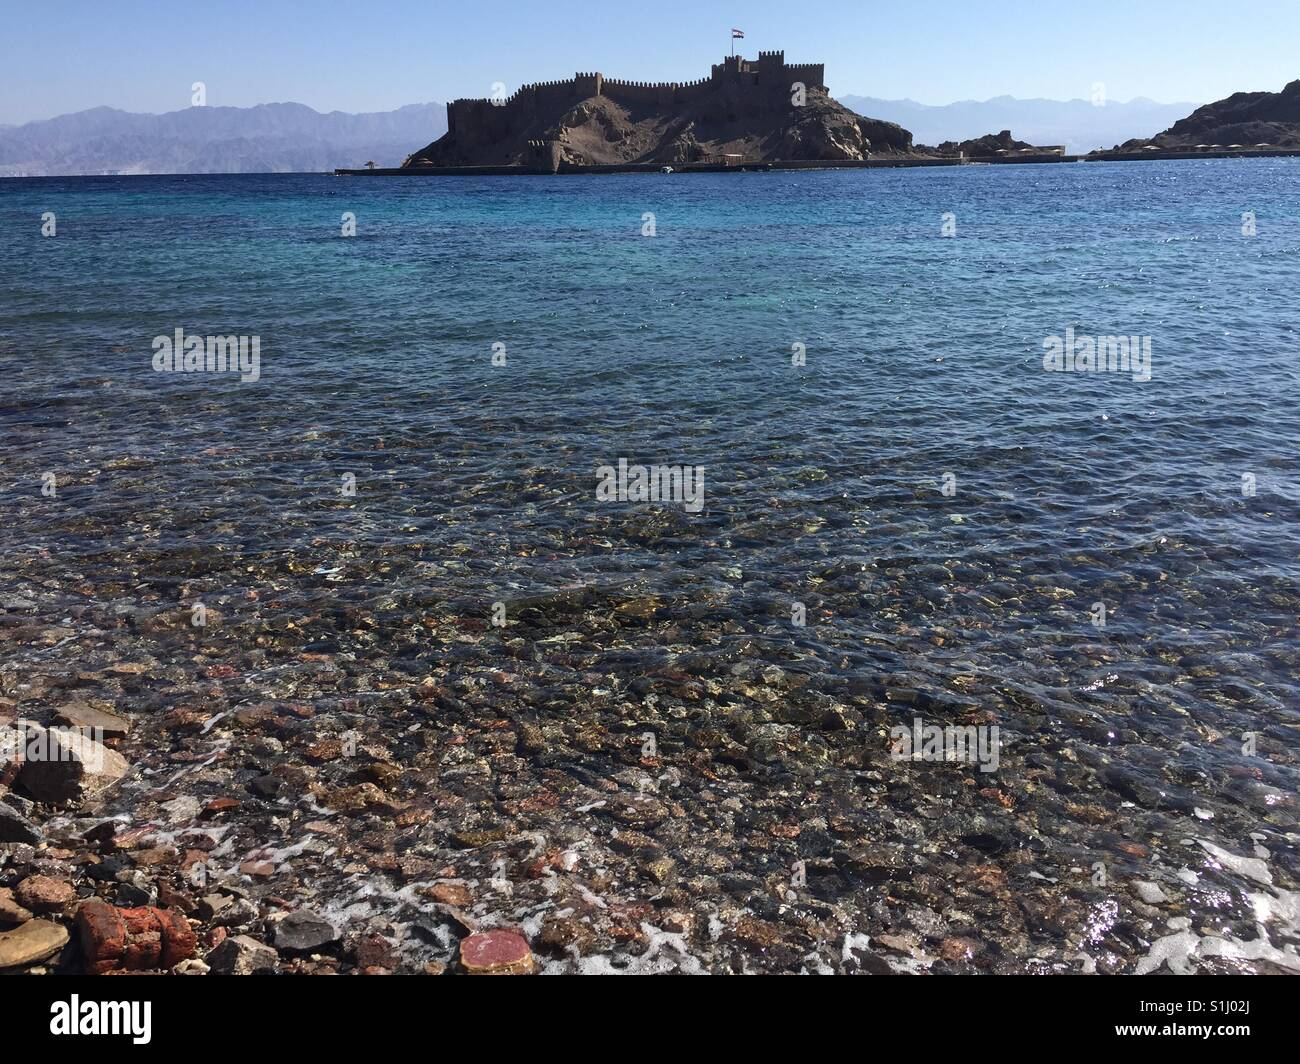 From south Sinai 🌊 - Stock Image